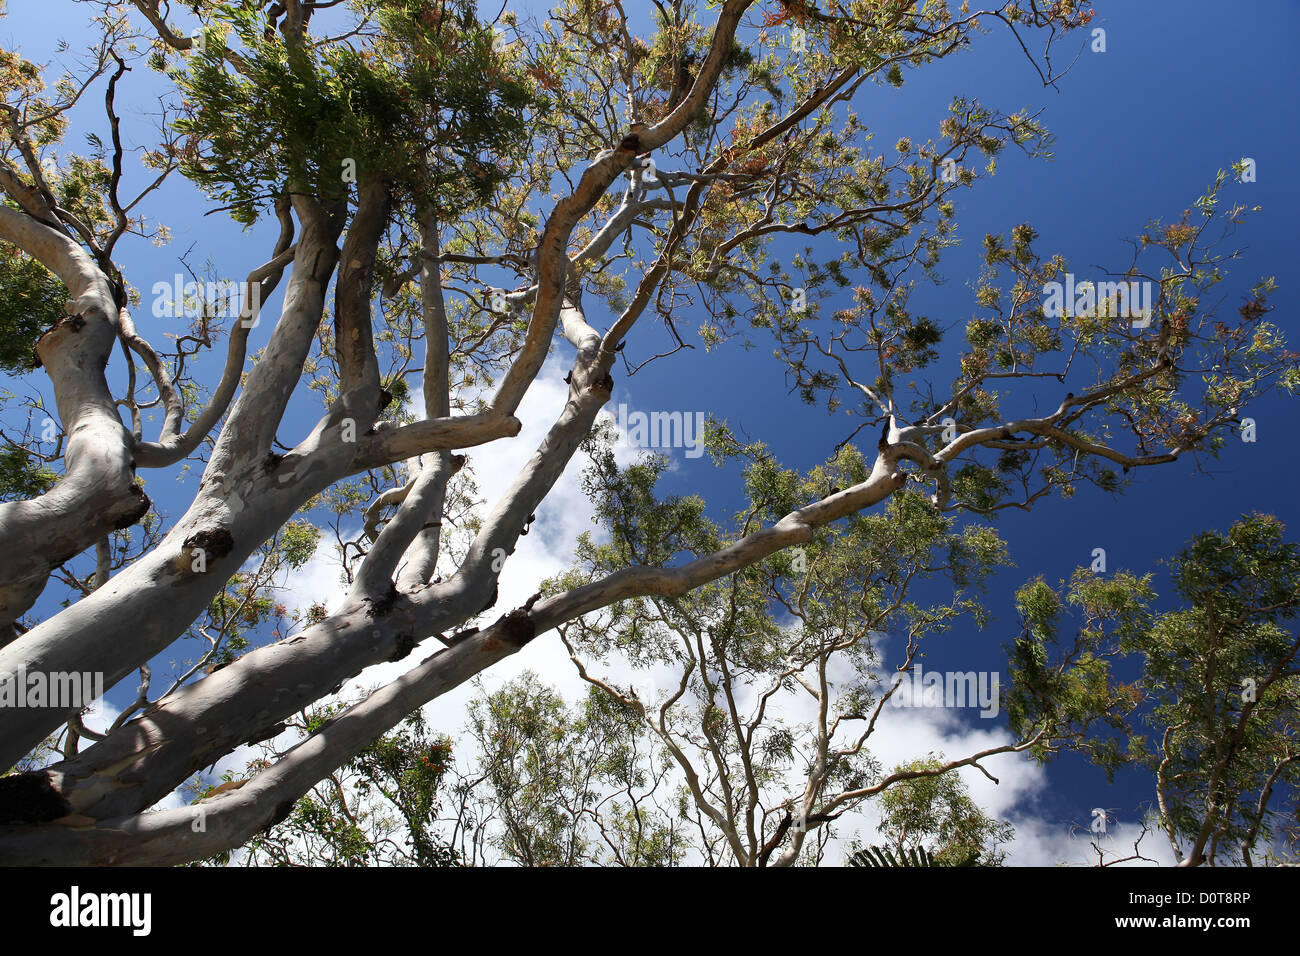 Tree, eucalyptus, karri, Ghost Gum, white, trunk, koala, endemically, typical, bark, sky, from below, leaf, leaves, - Stock Image